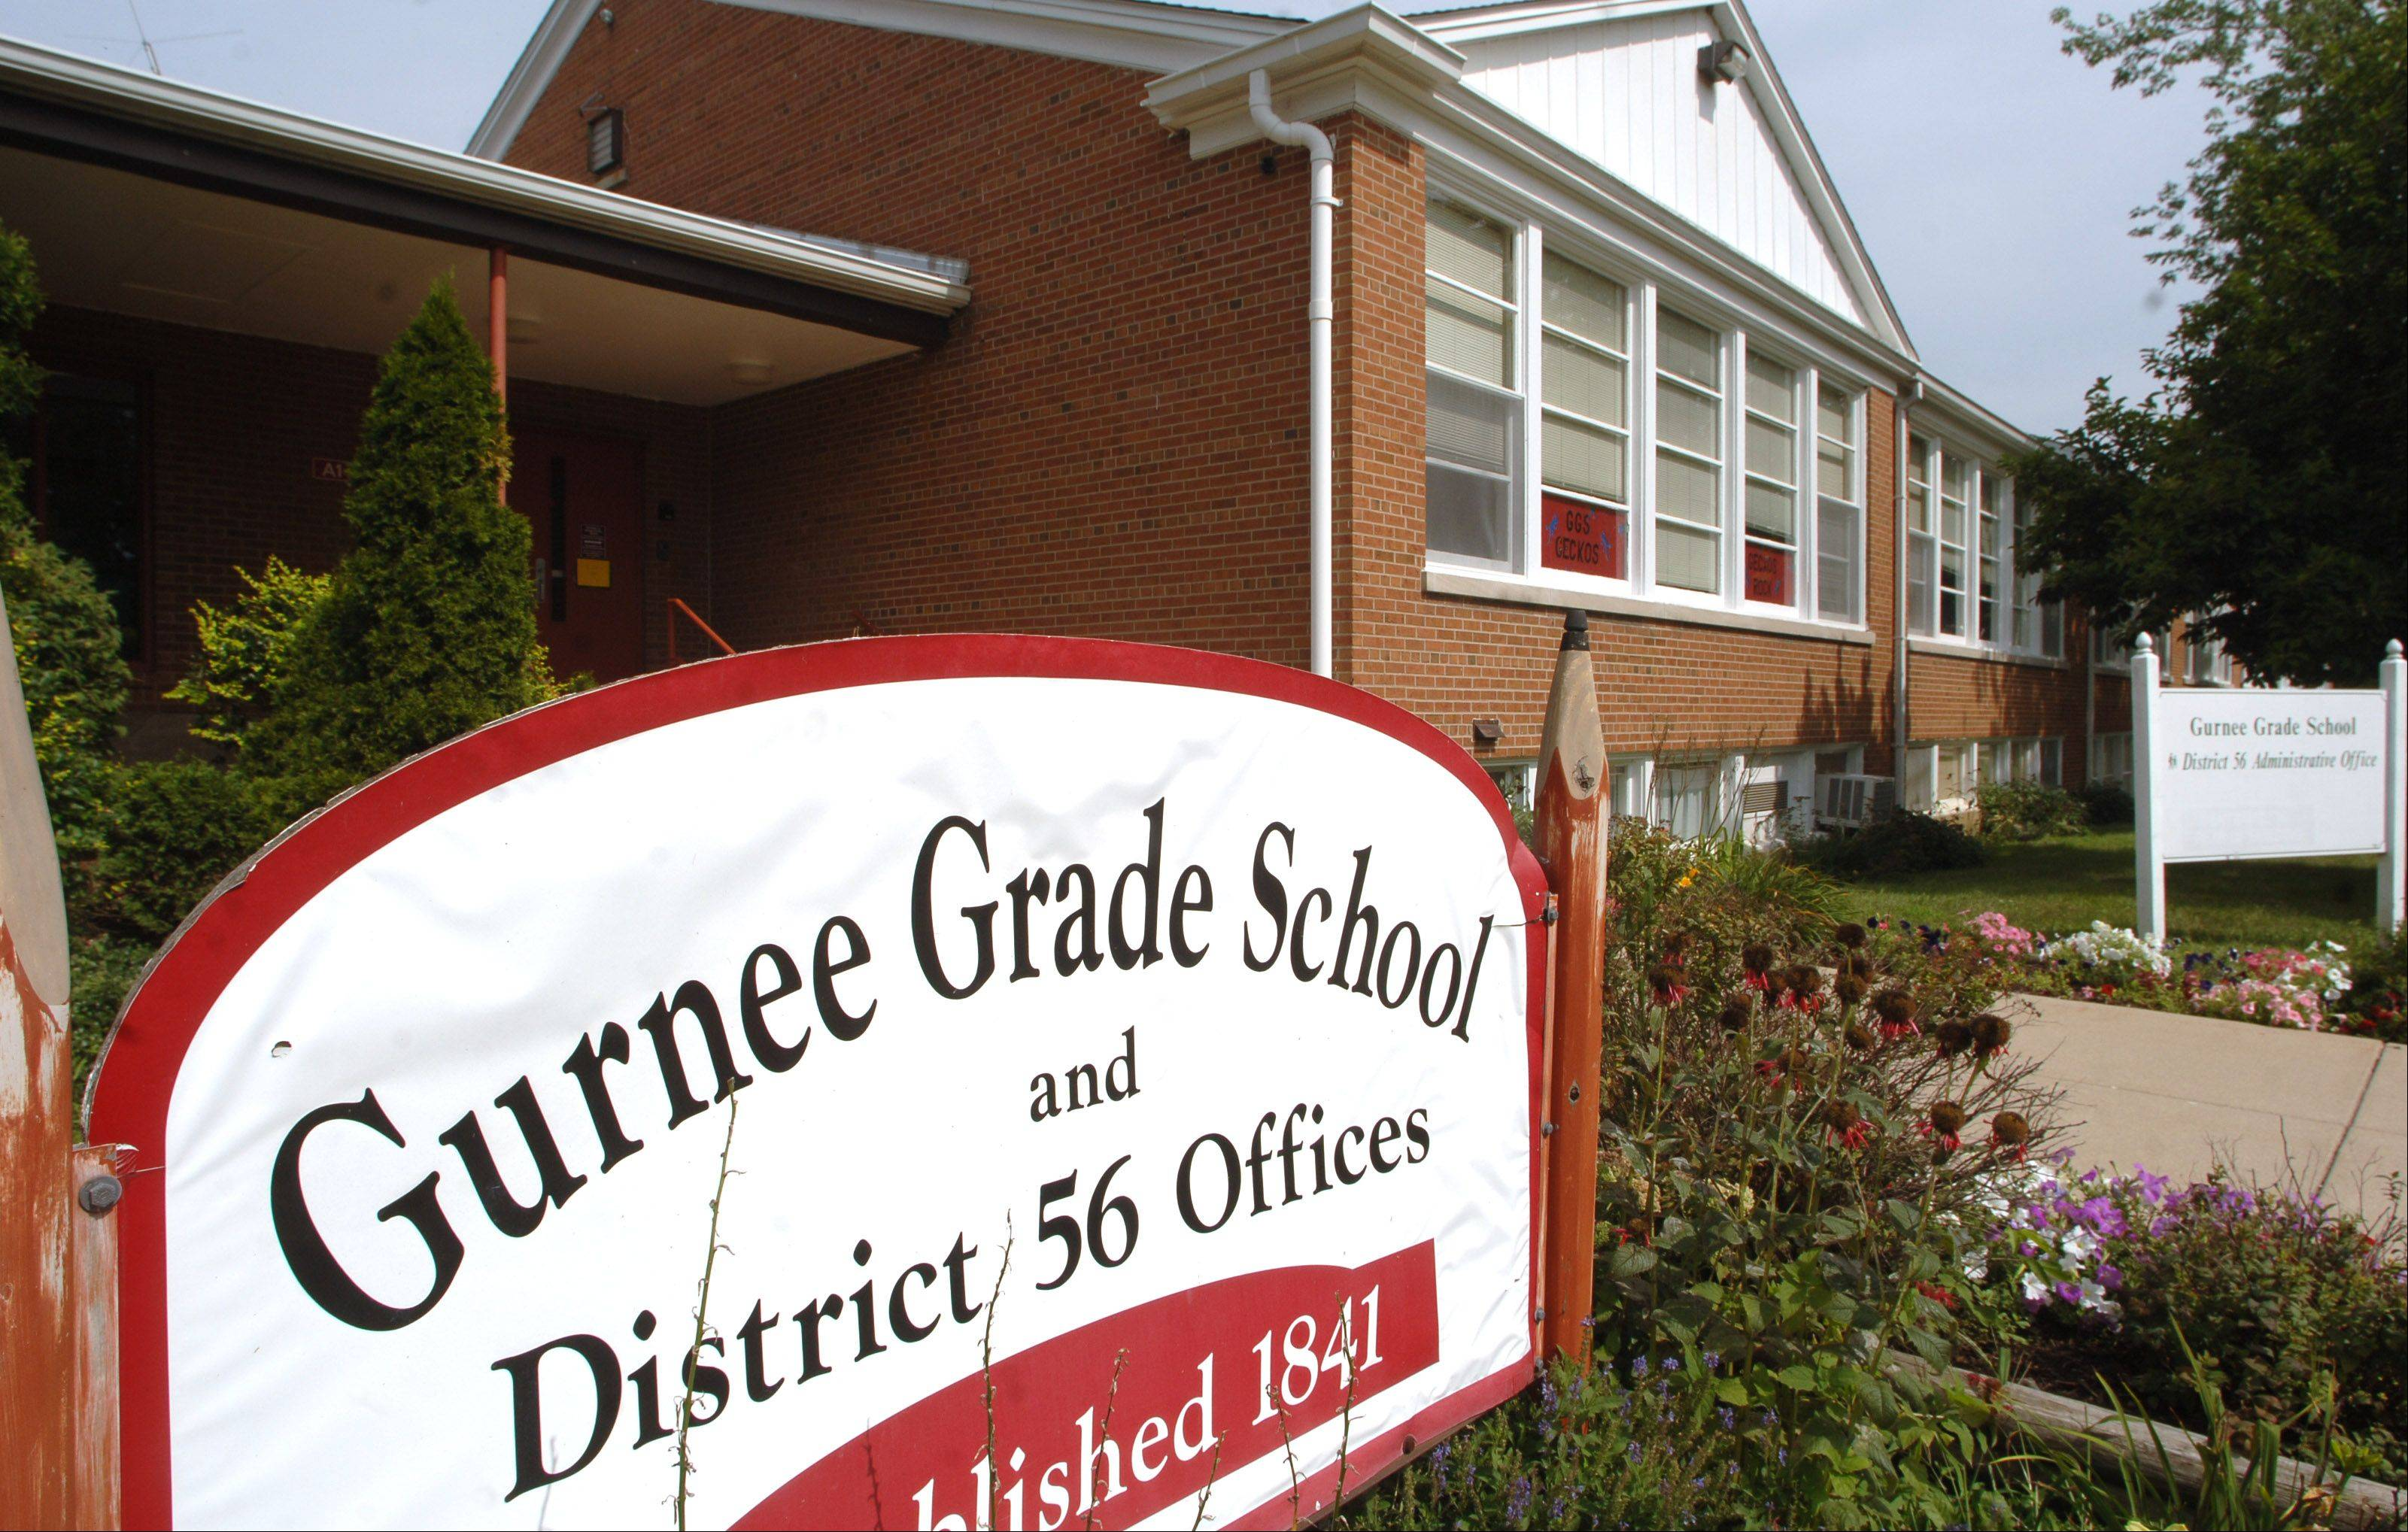 Demolition of the old Gurnee Grade School will begin Monday, Sept. 30.